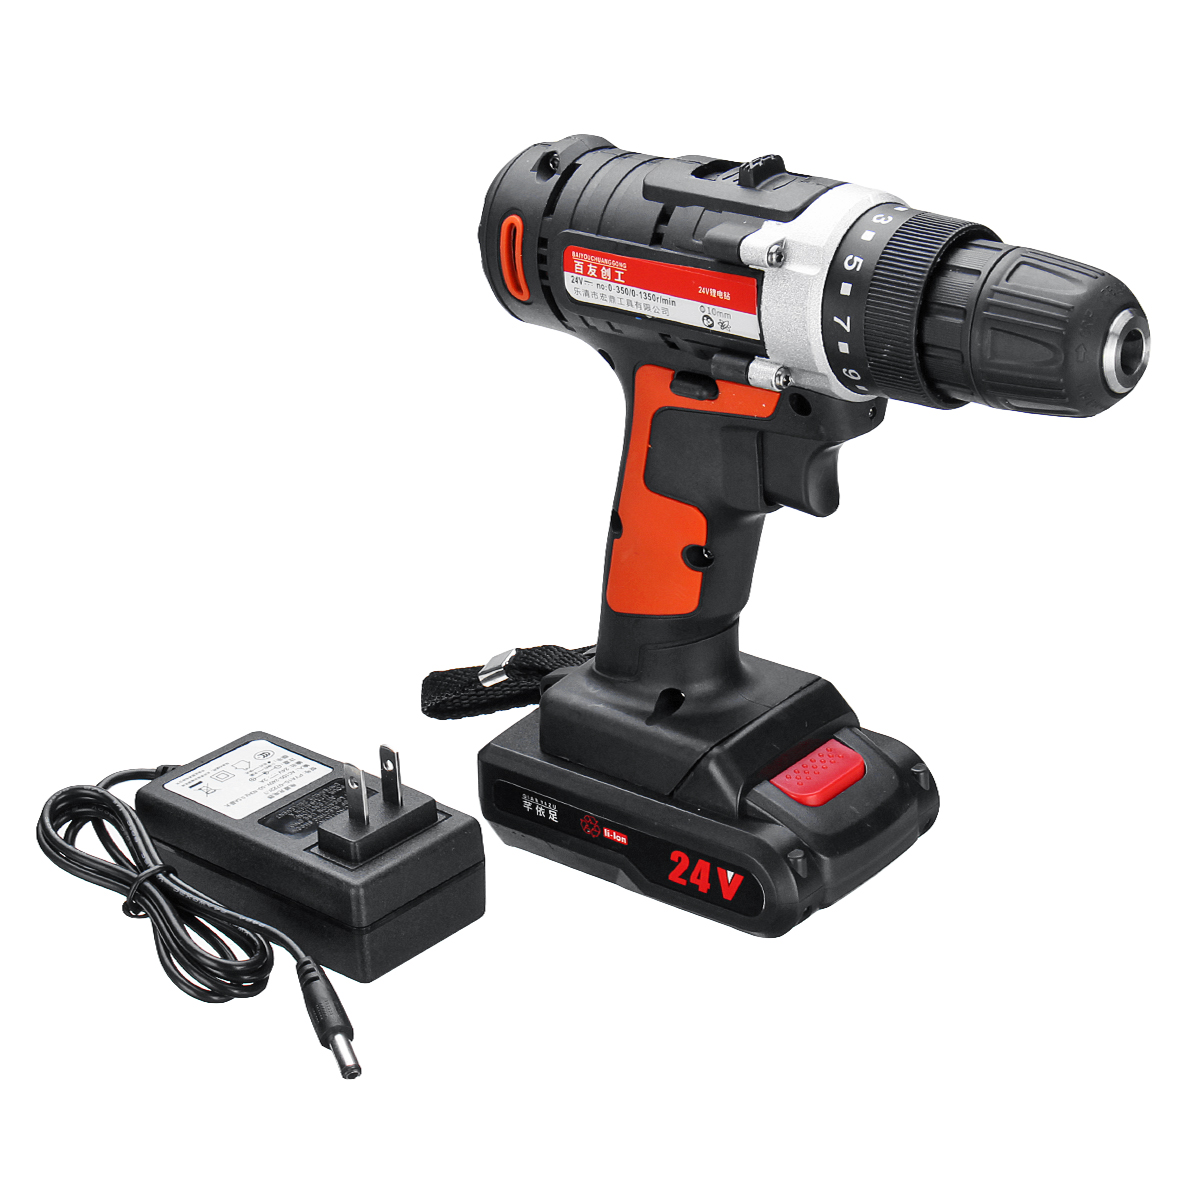 12V/24V Lithium Battery Power Drills Cordless Rechargeable 2 Speed Electric Drill